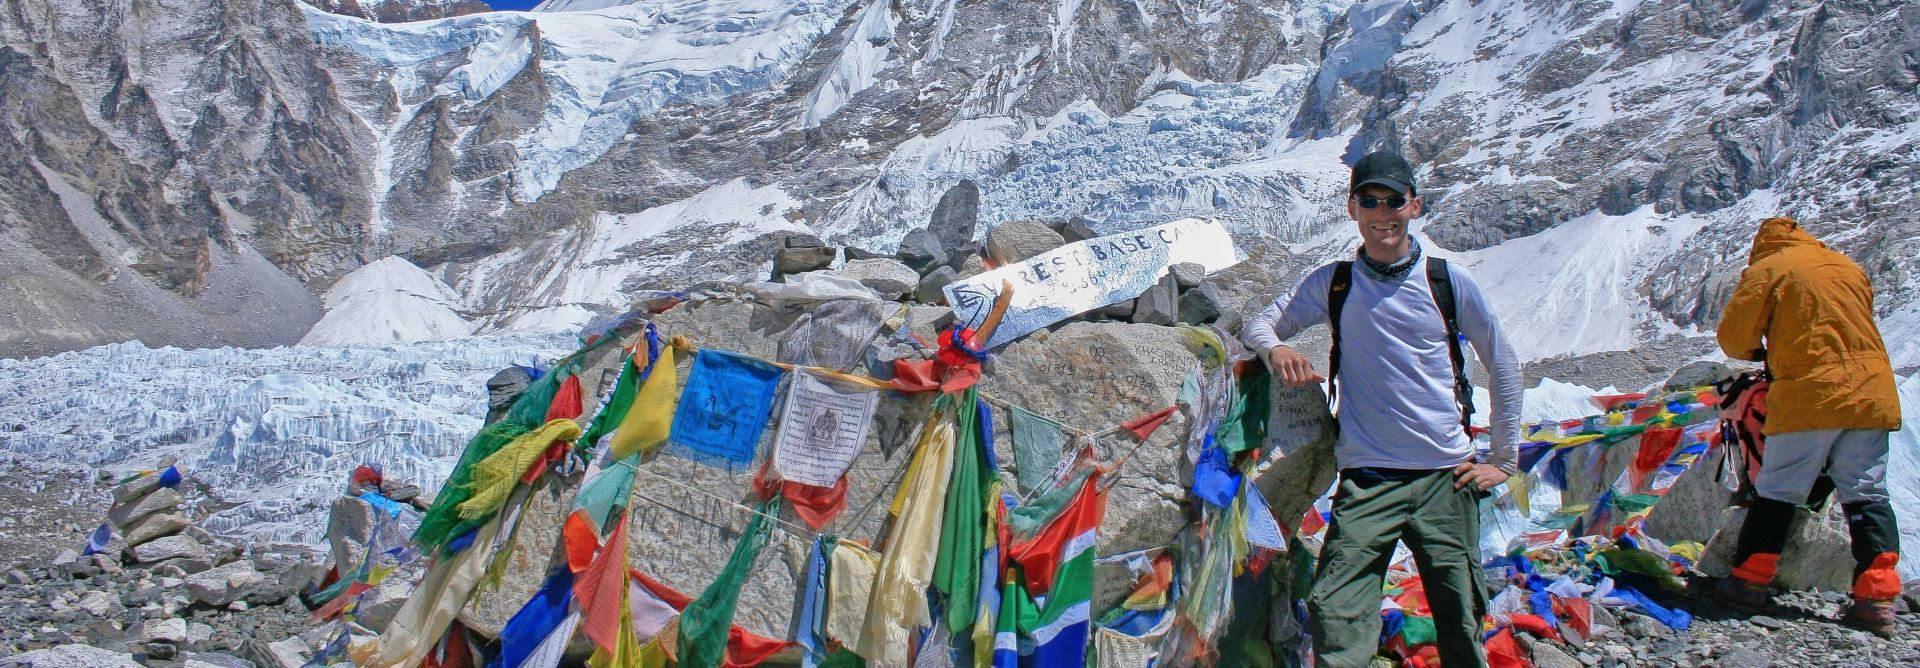 Everest Base Camp Charity Trek